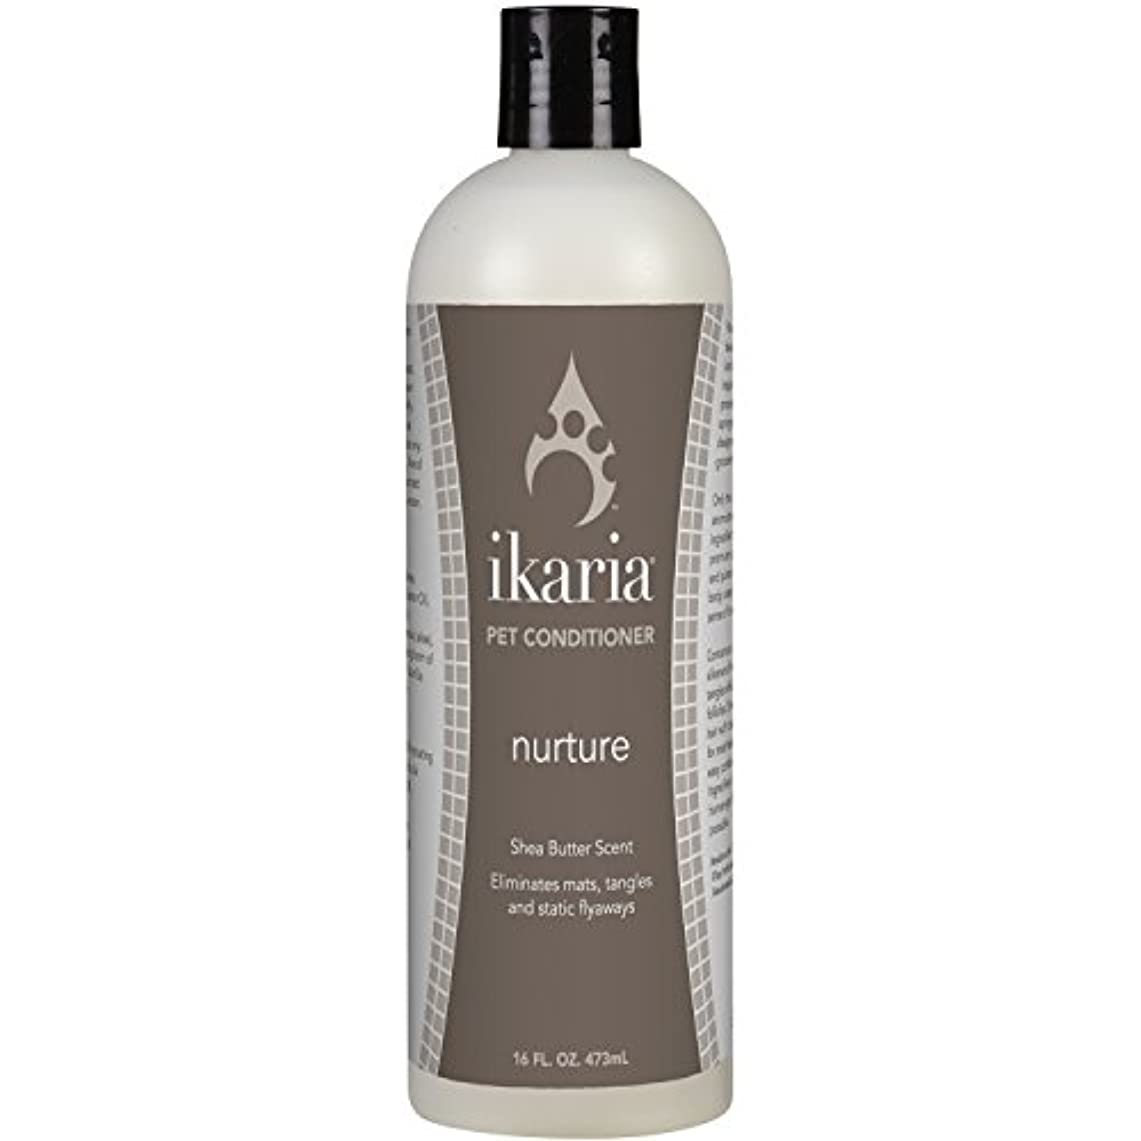 好色な好みむちゃくちゃIkaria ZX3151 16 03 Nurture Conditioner, 16-Ounce by Ikaria